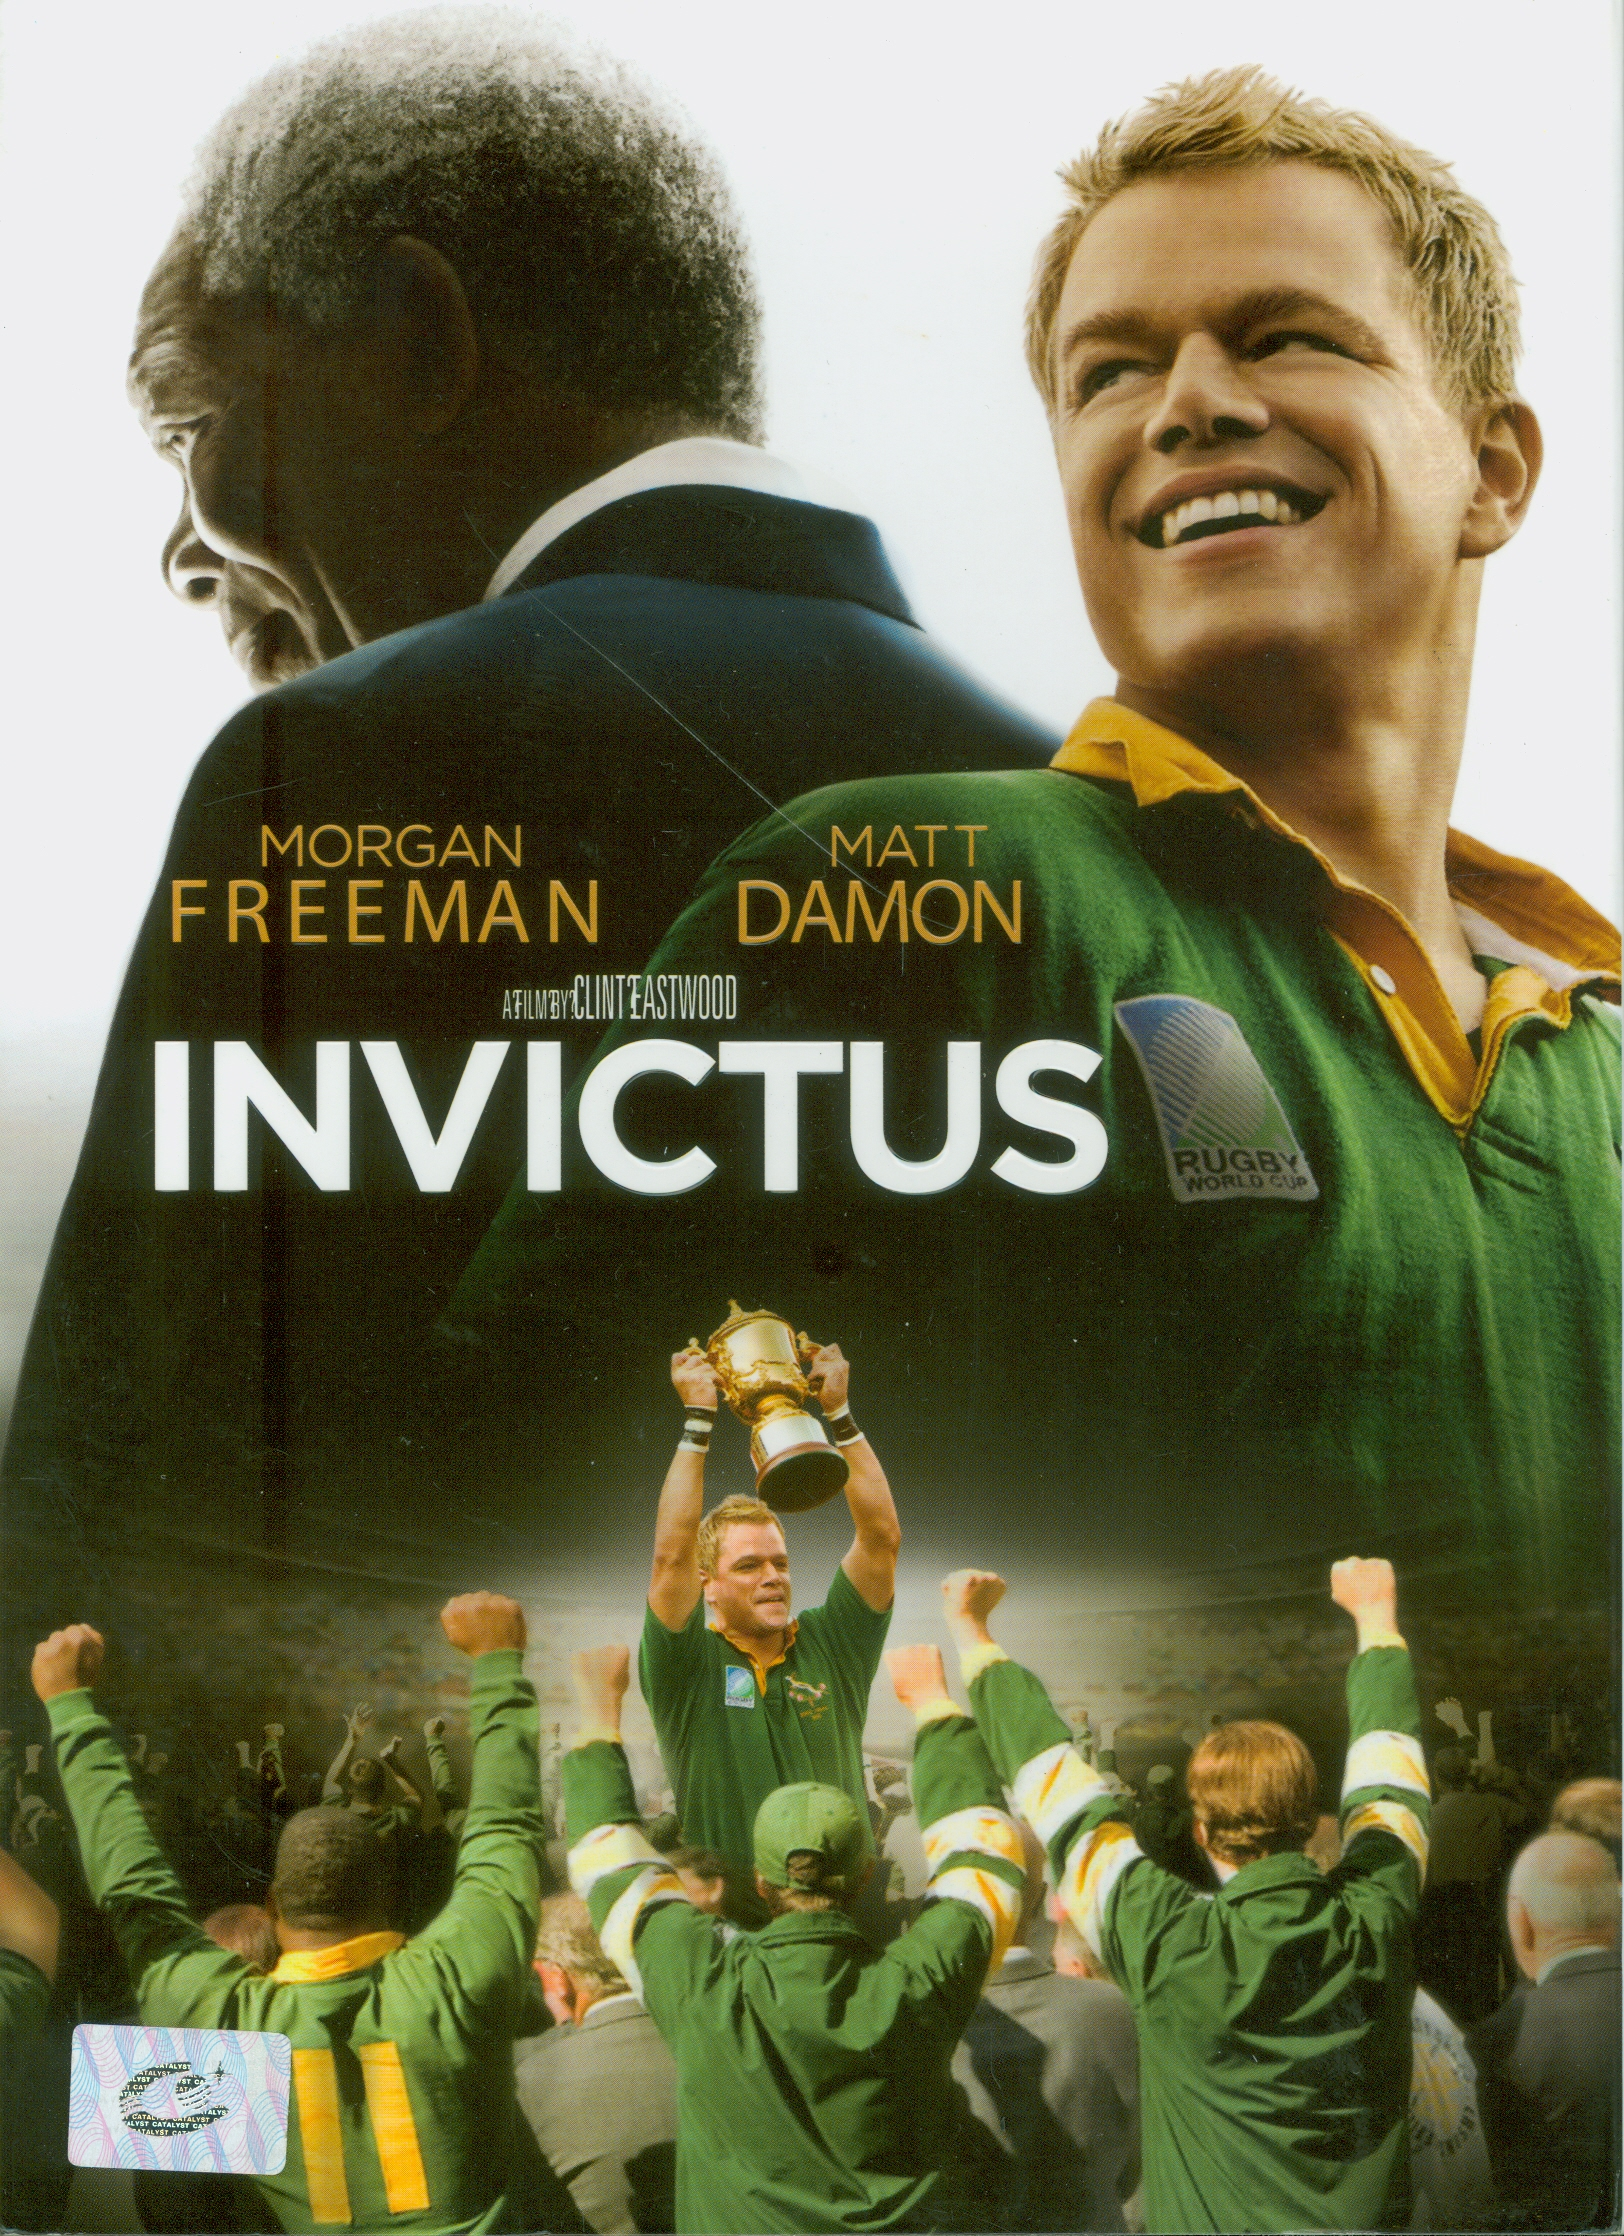 Invictus[videorecording] /Warner Bros. Picture spresents ; in association with Spyglass Entertainment ; a Revelations Entertainment/Man Company production ; a Malpaso production ; screenplay by Anthony Peckham ; produced by Lori McCreary, Robert Lorenz, Mace Neufeld ; directed and produced by Clint Eastwood